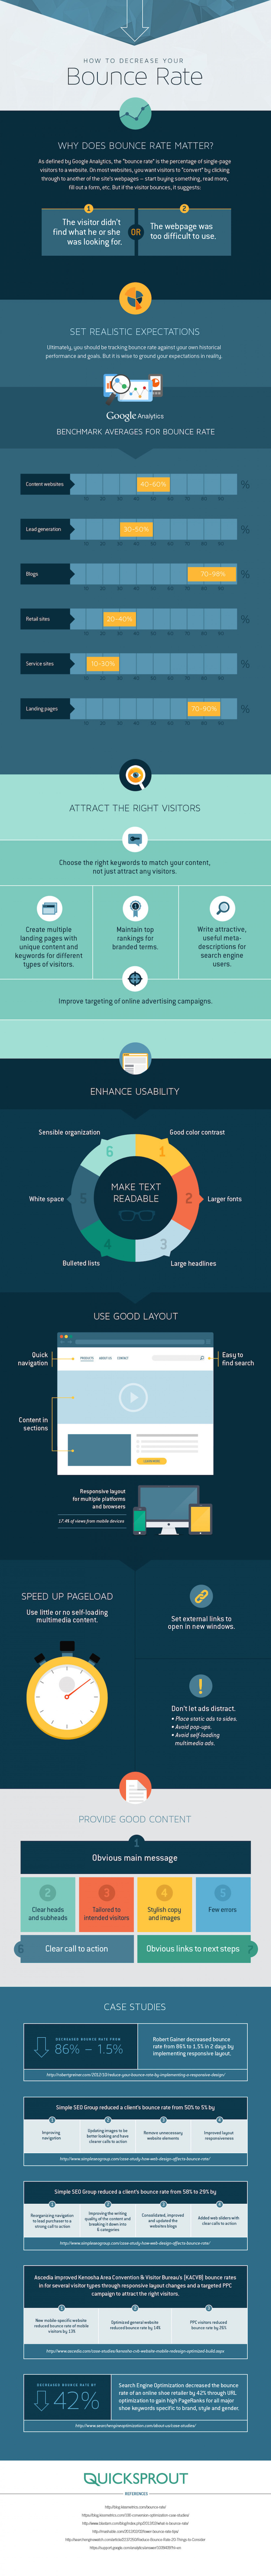 How to Decrease Your Bounce Rate? Infographic